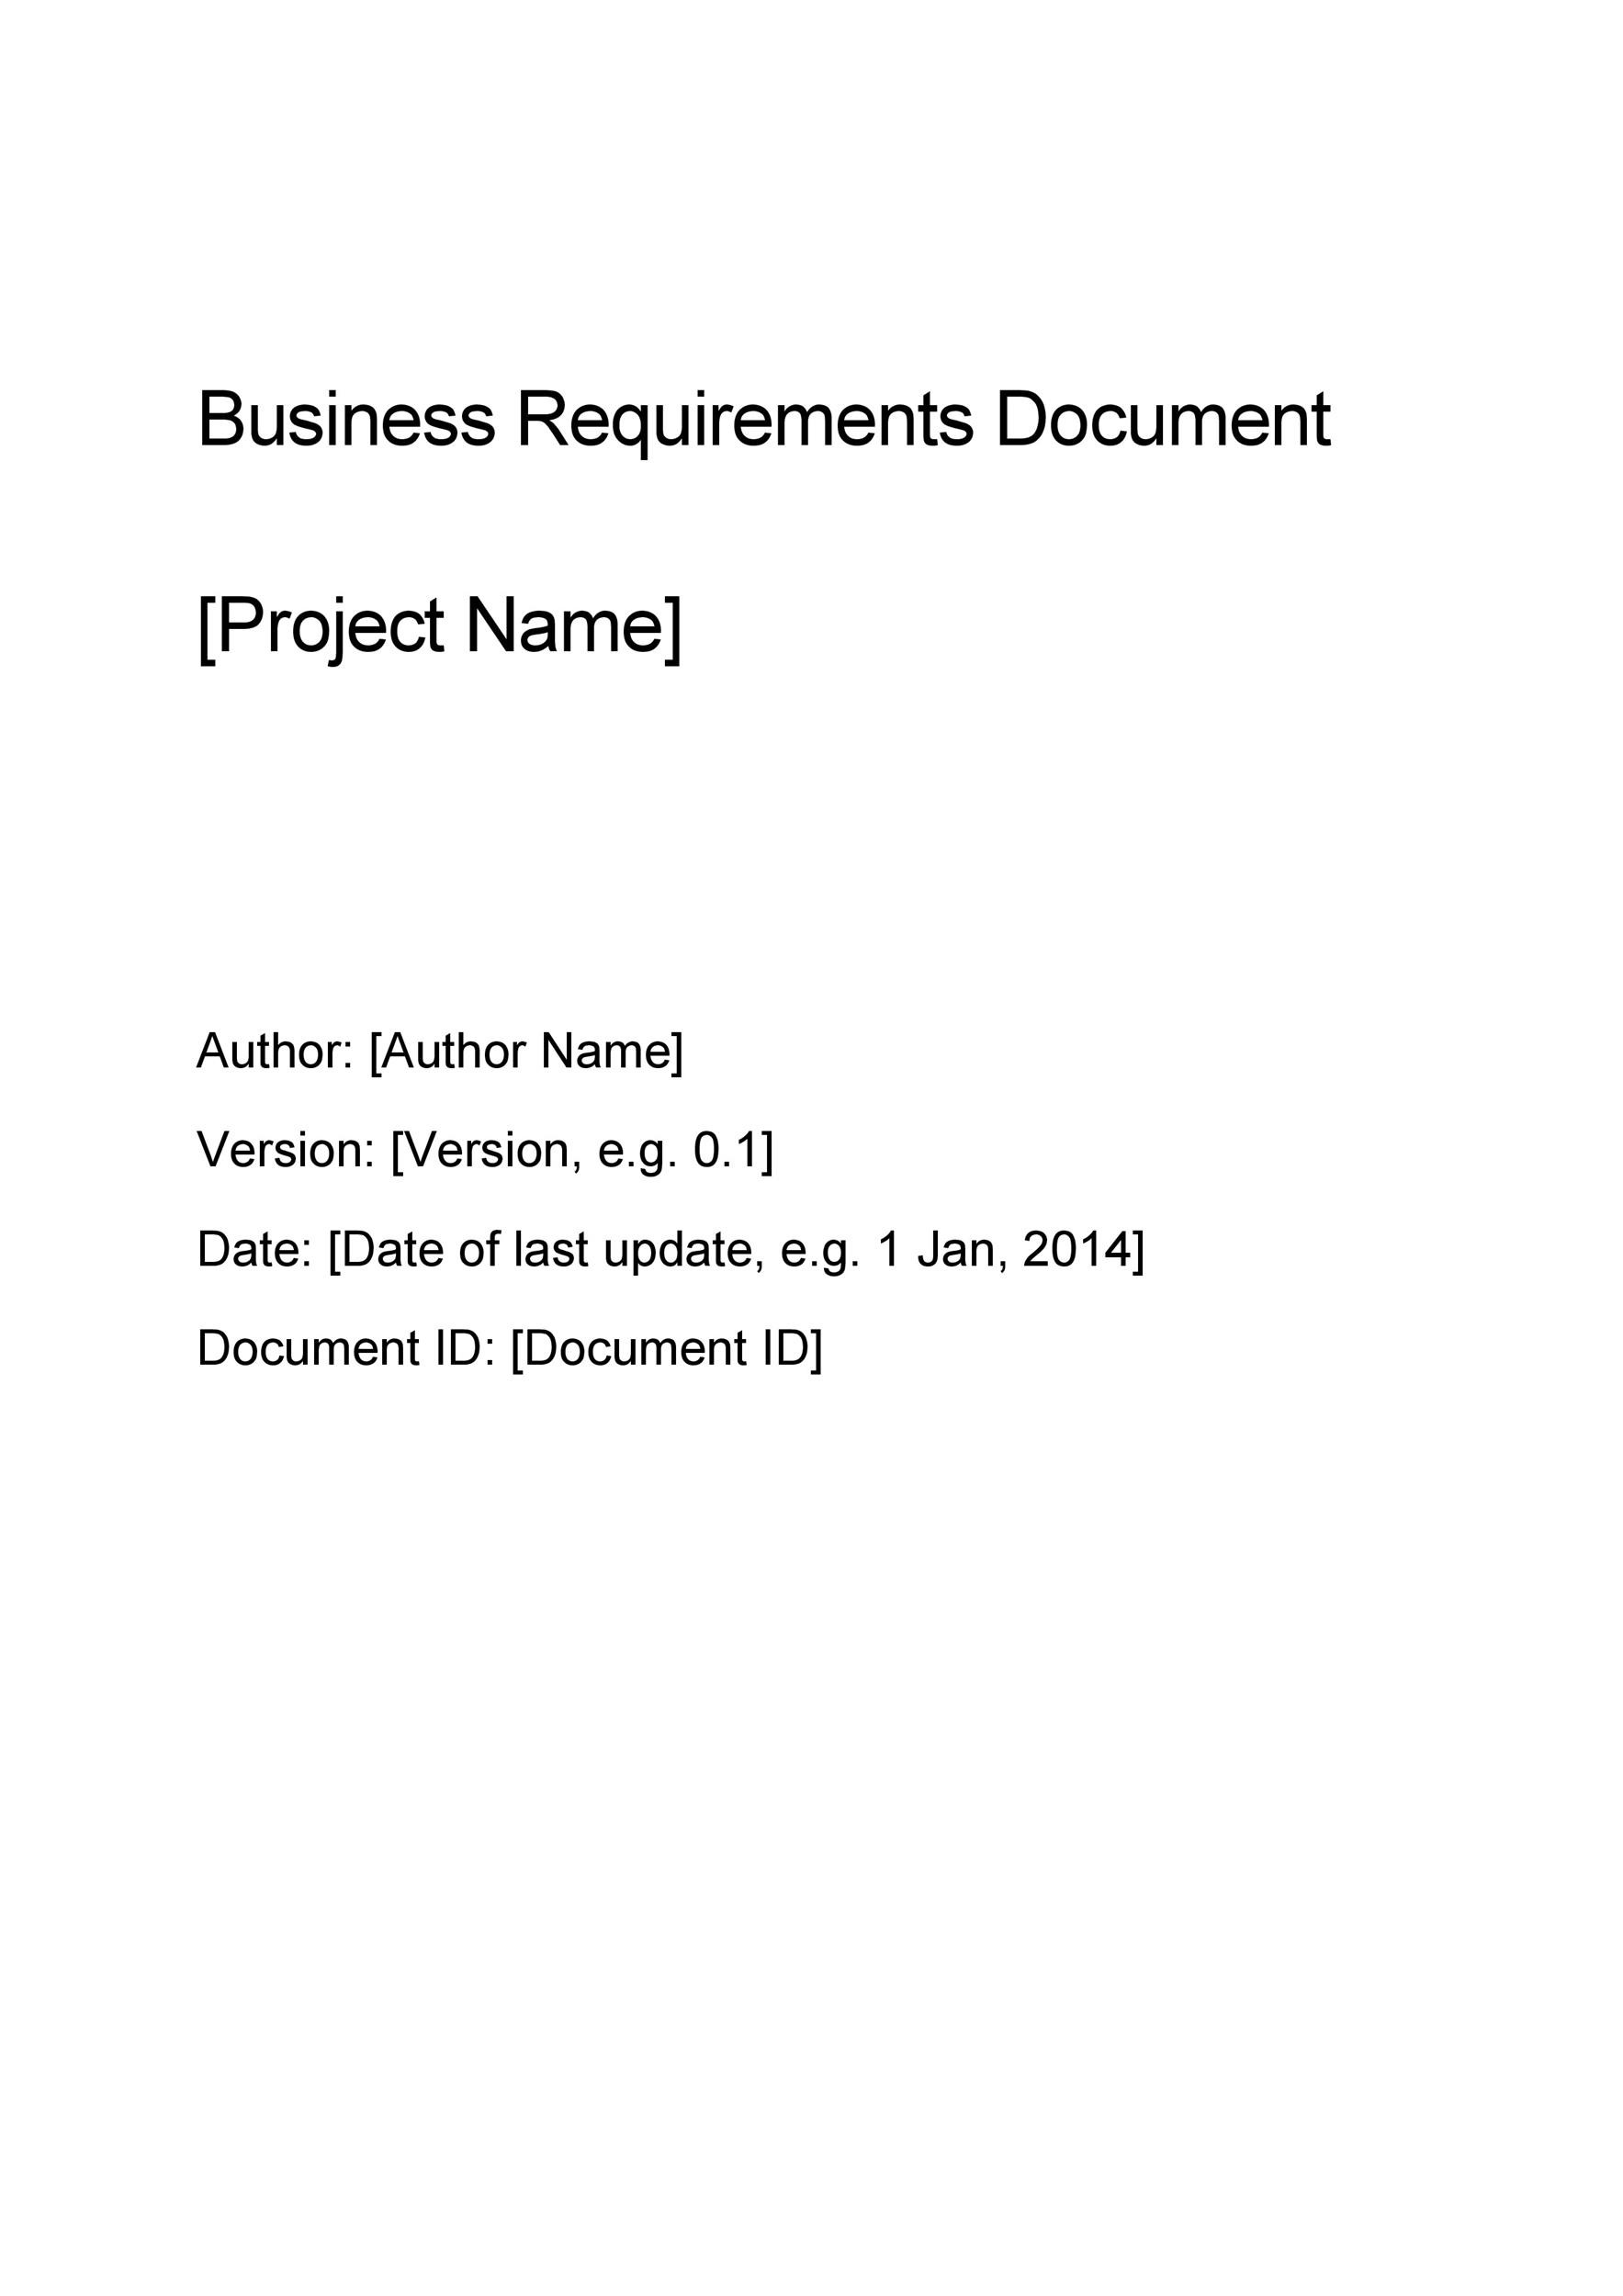 Free business requirements document template 04